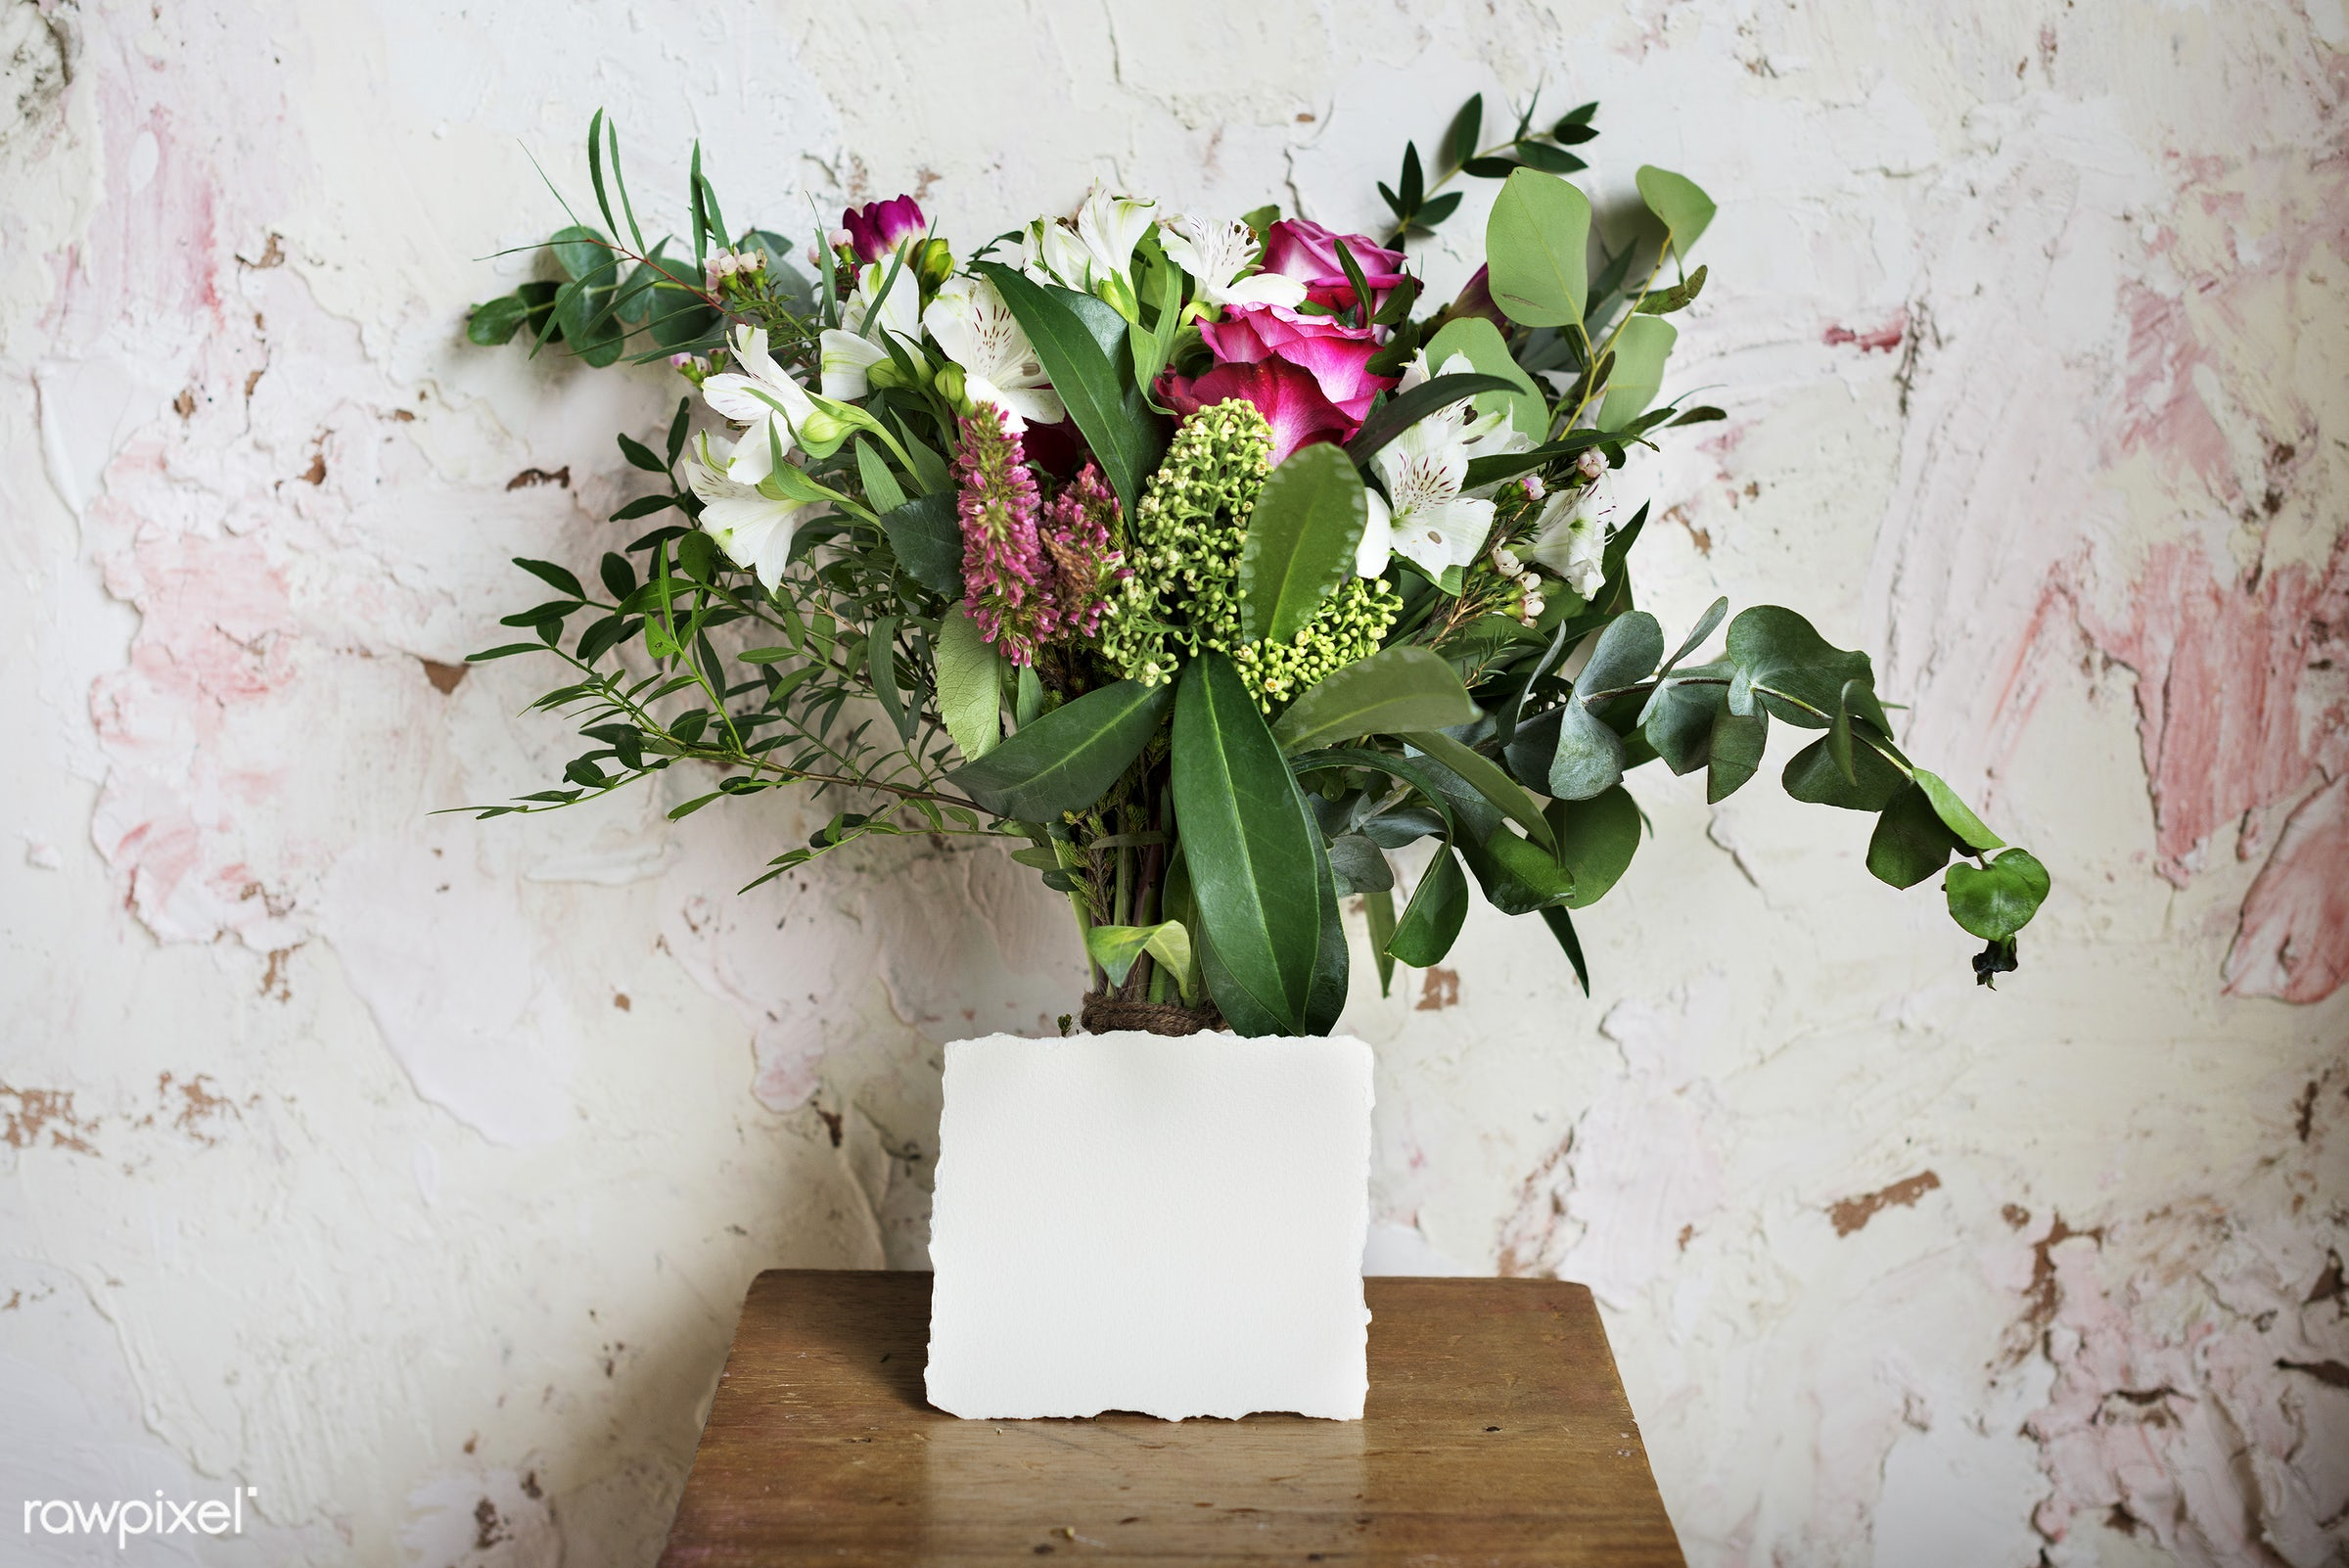 plant, bouquet, decorative, botany, plants, romance, spring, blossom, nature, fresh, flower, anniversary, greeting, blooming...